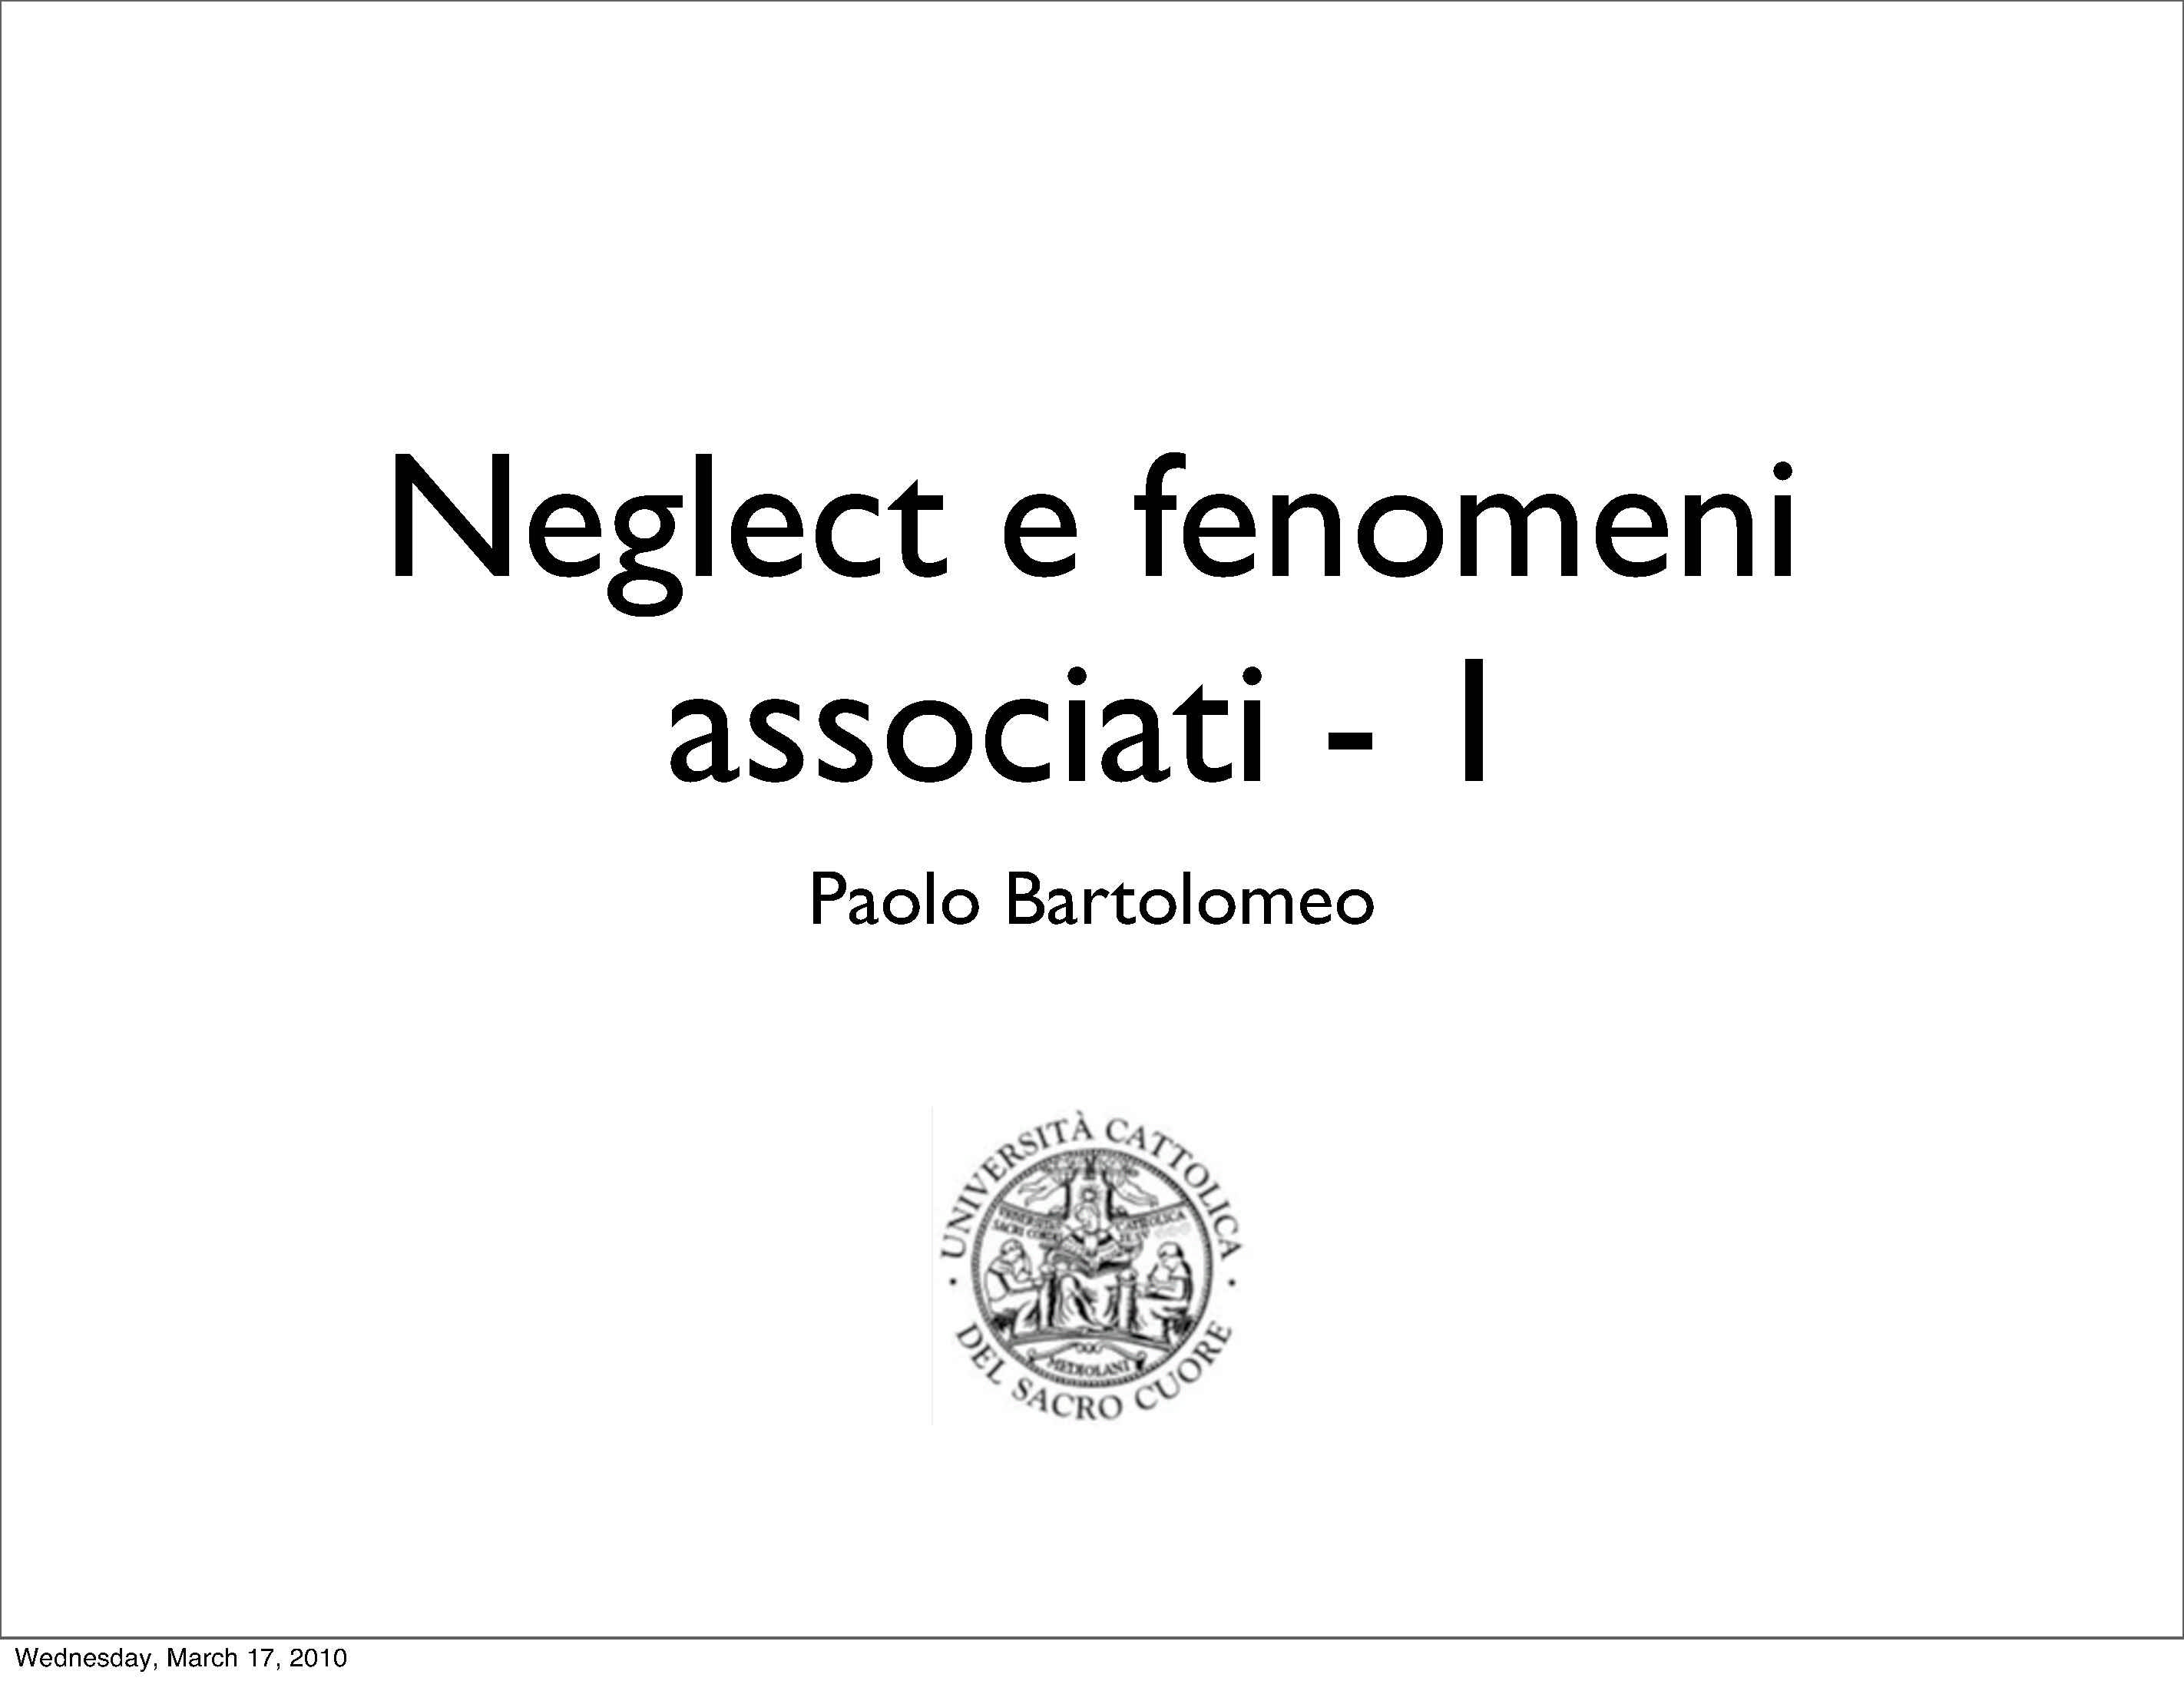 Fenomeni associati al neglect